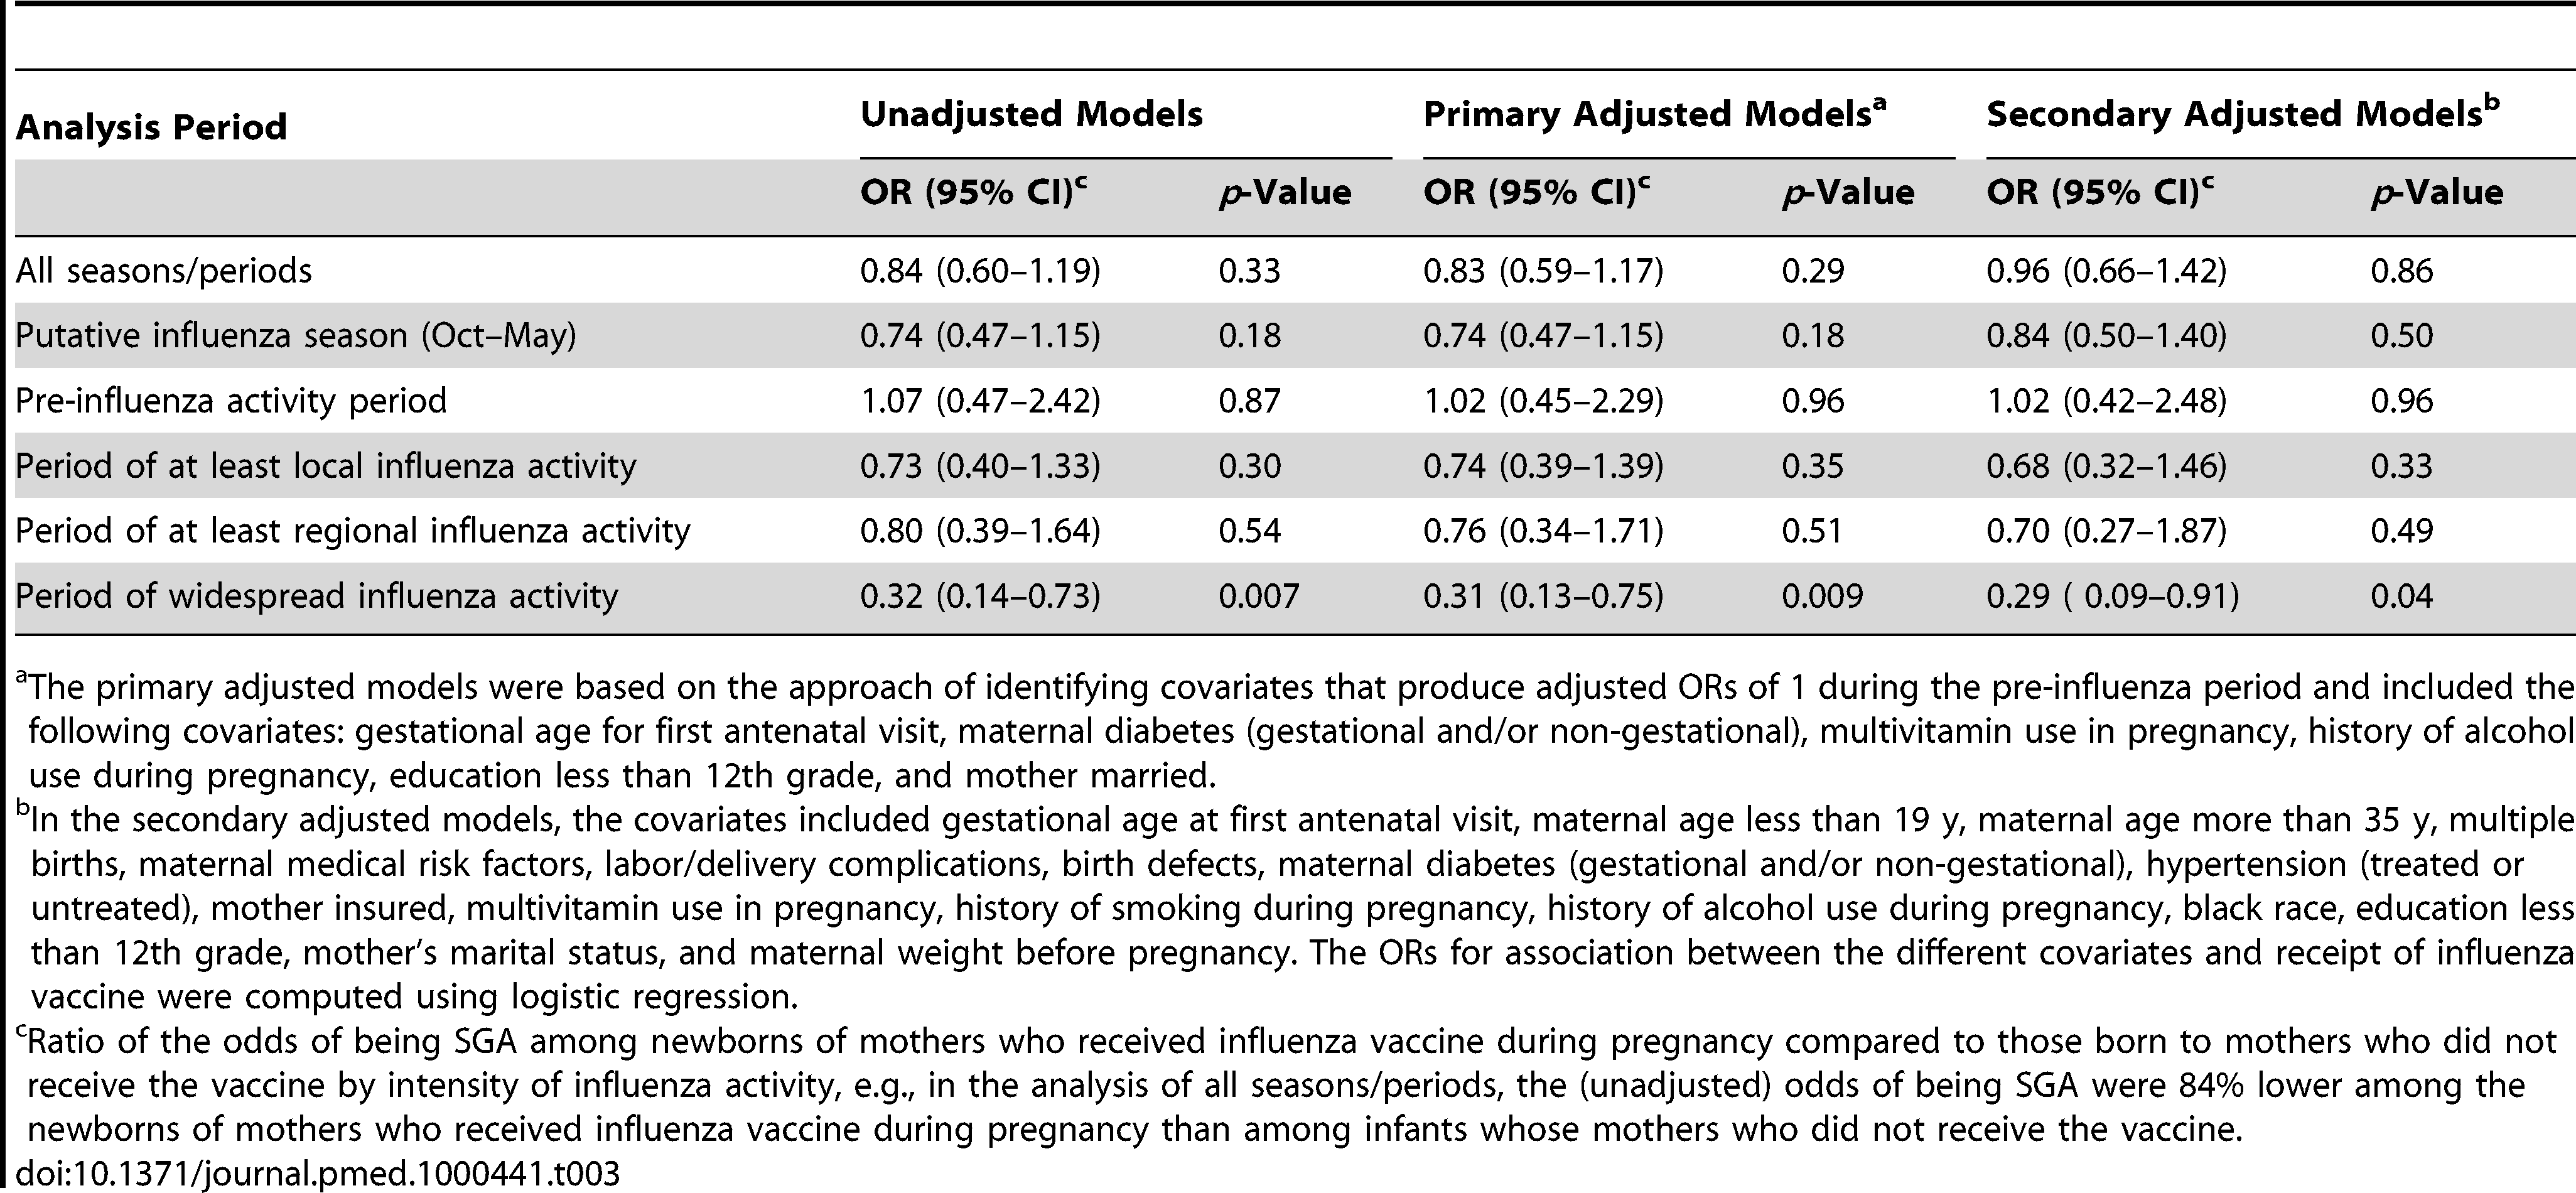 ORs of being SGA by maternal influenza vaccine status (ORs<1 imply a protective association of the vaccine).